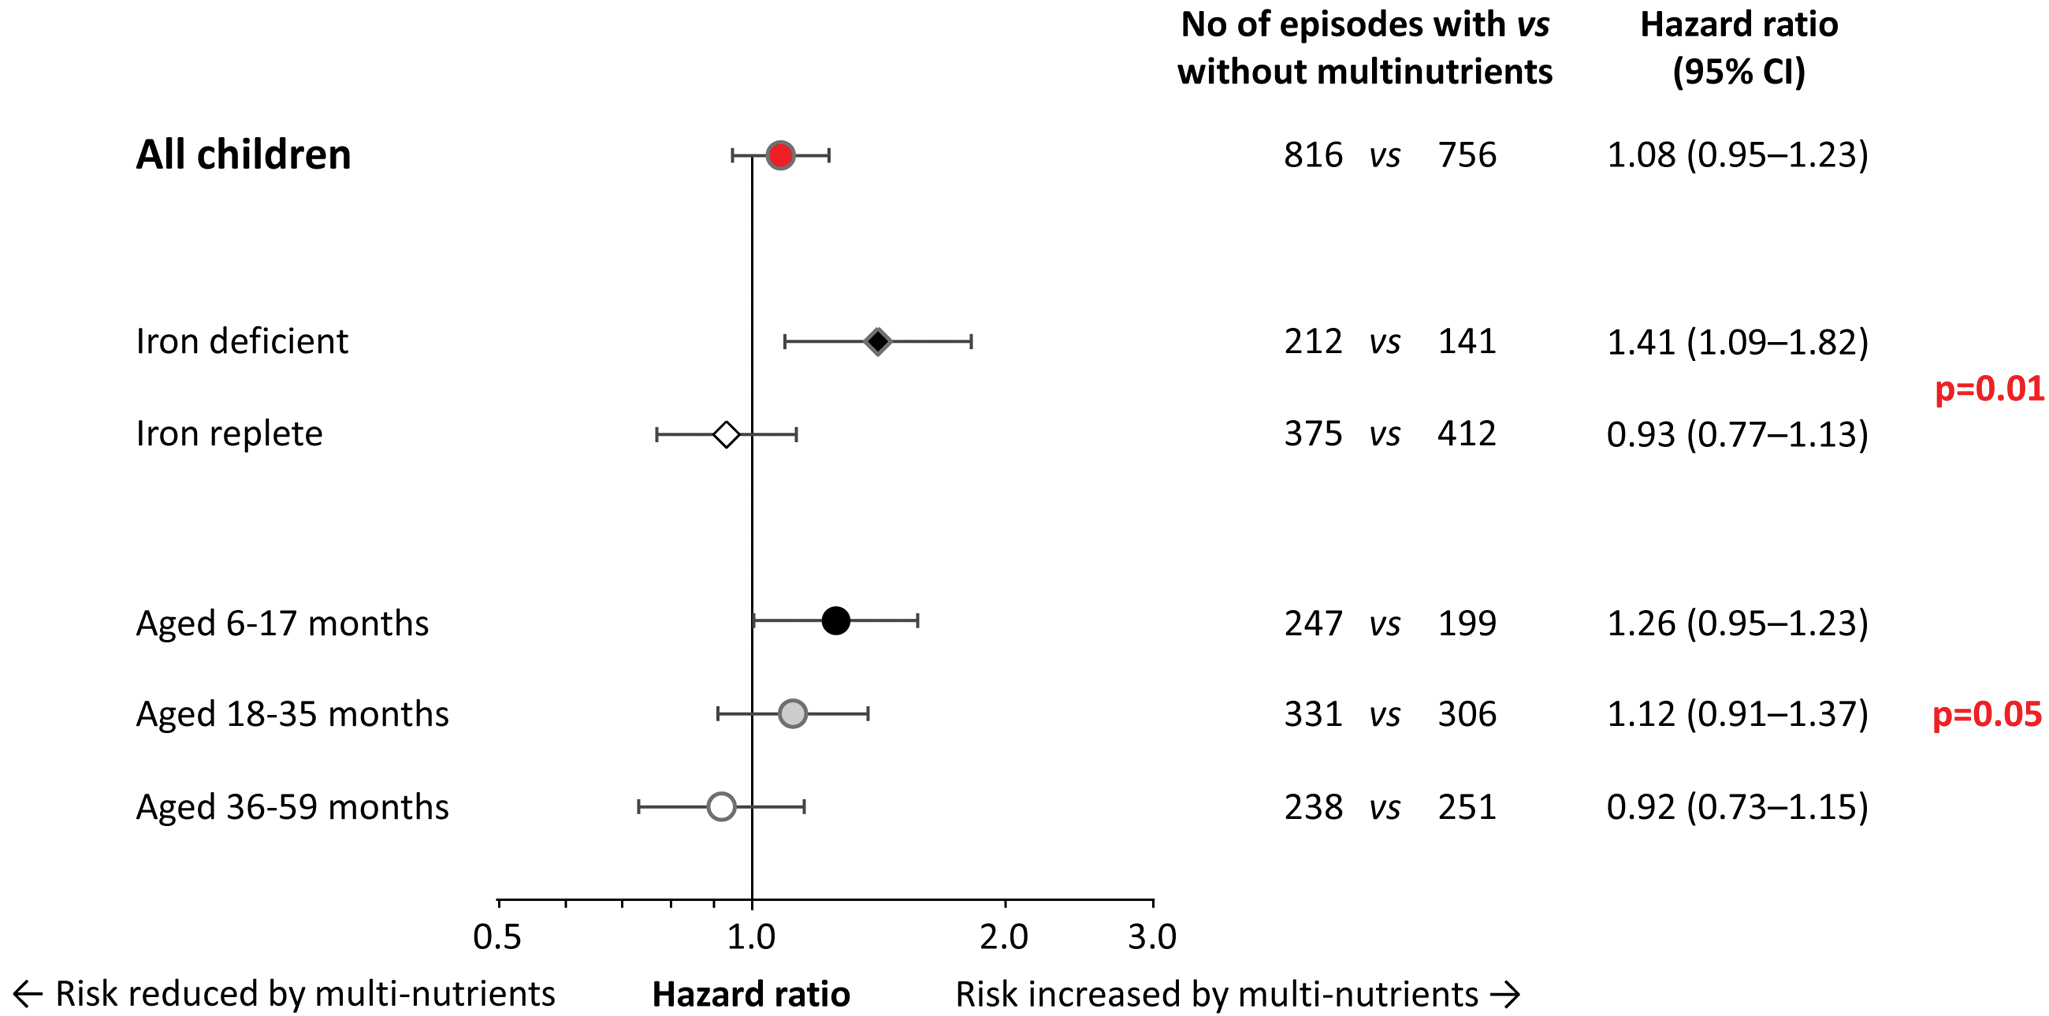 Effect of multi-nutrient supplementation on malaria rates, by iron status and age class.